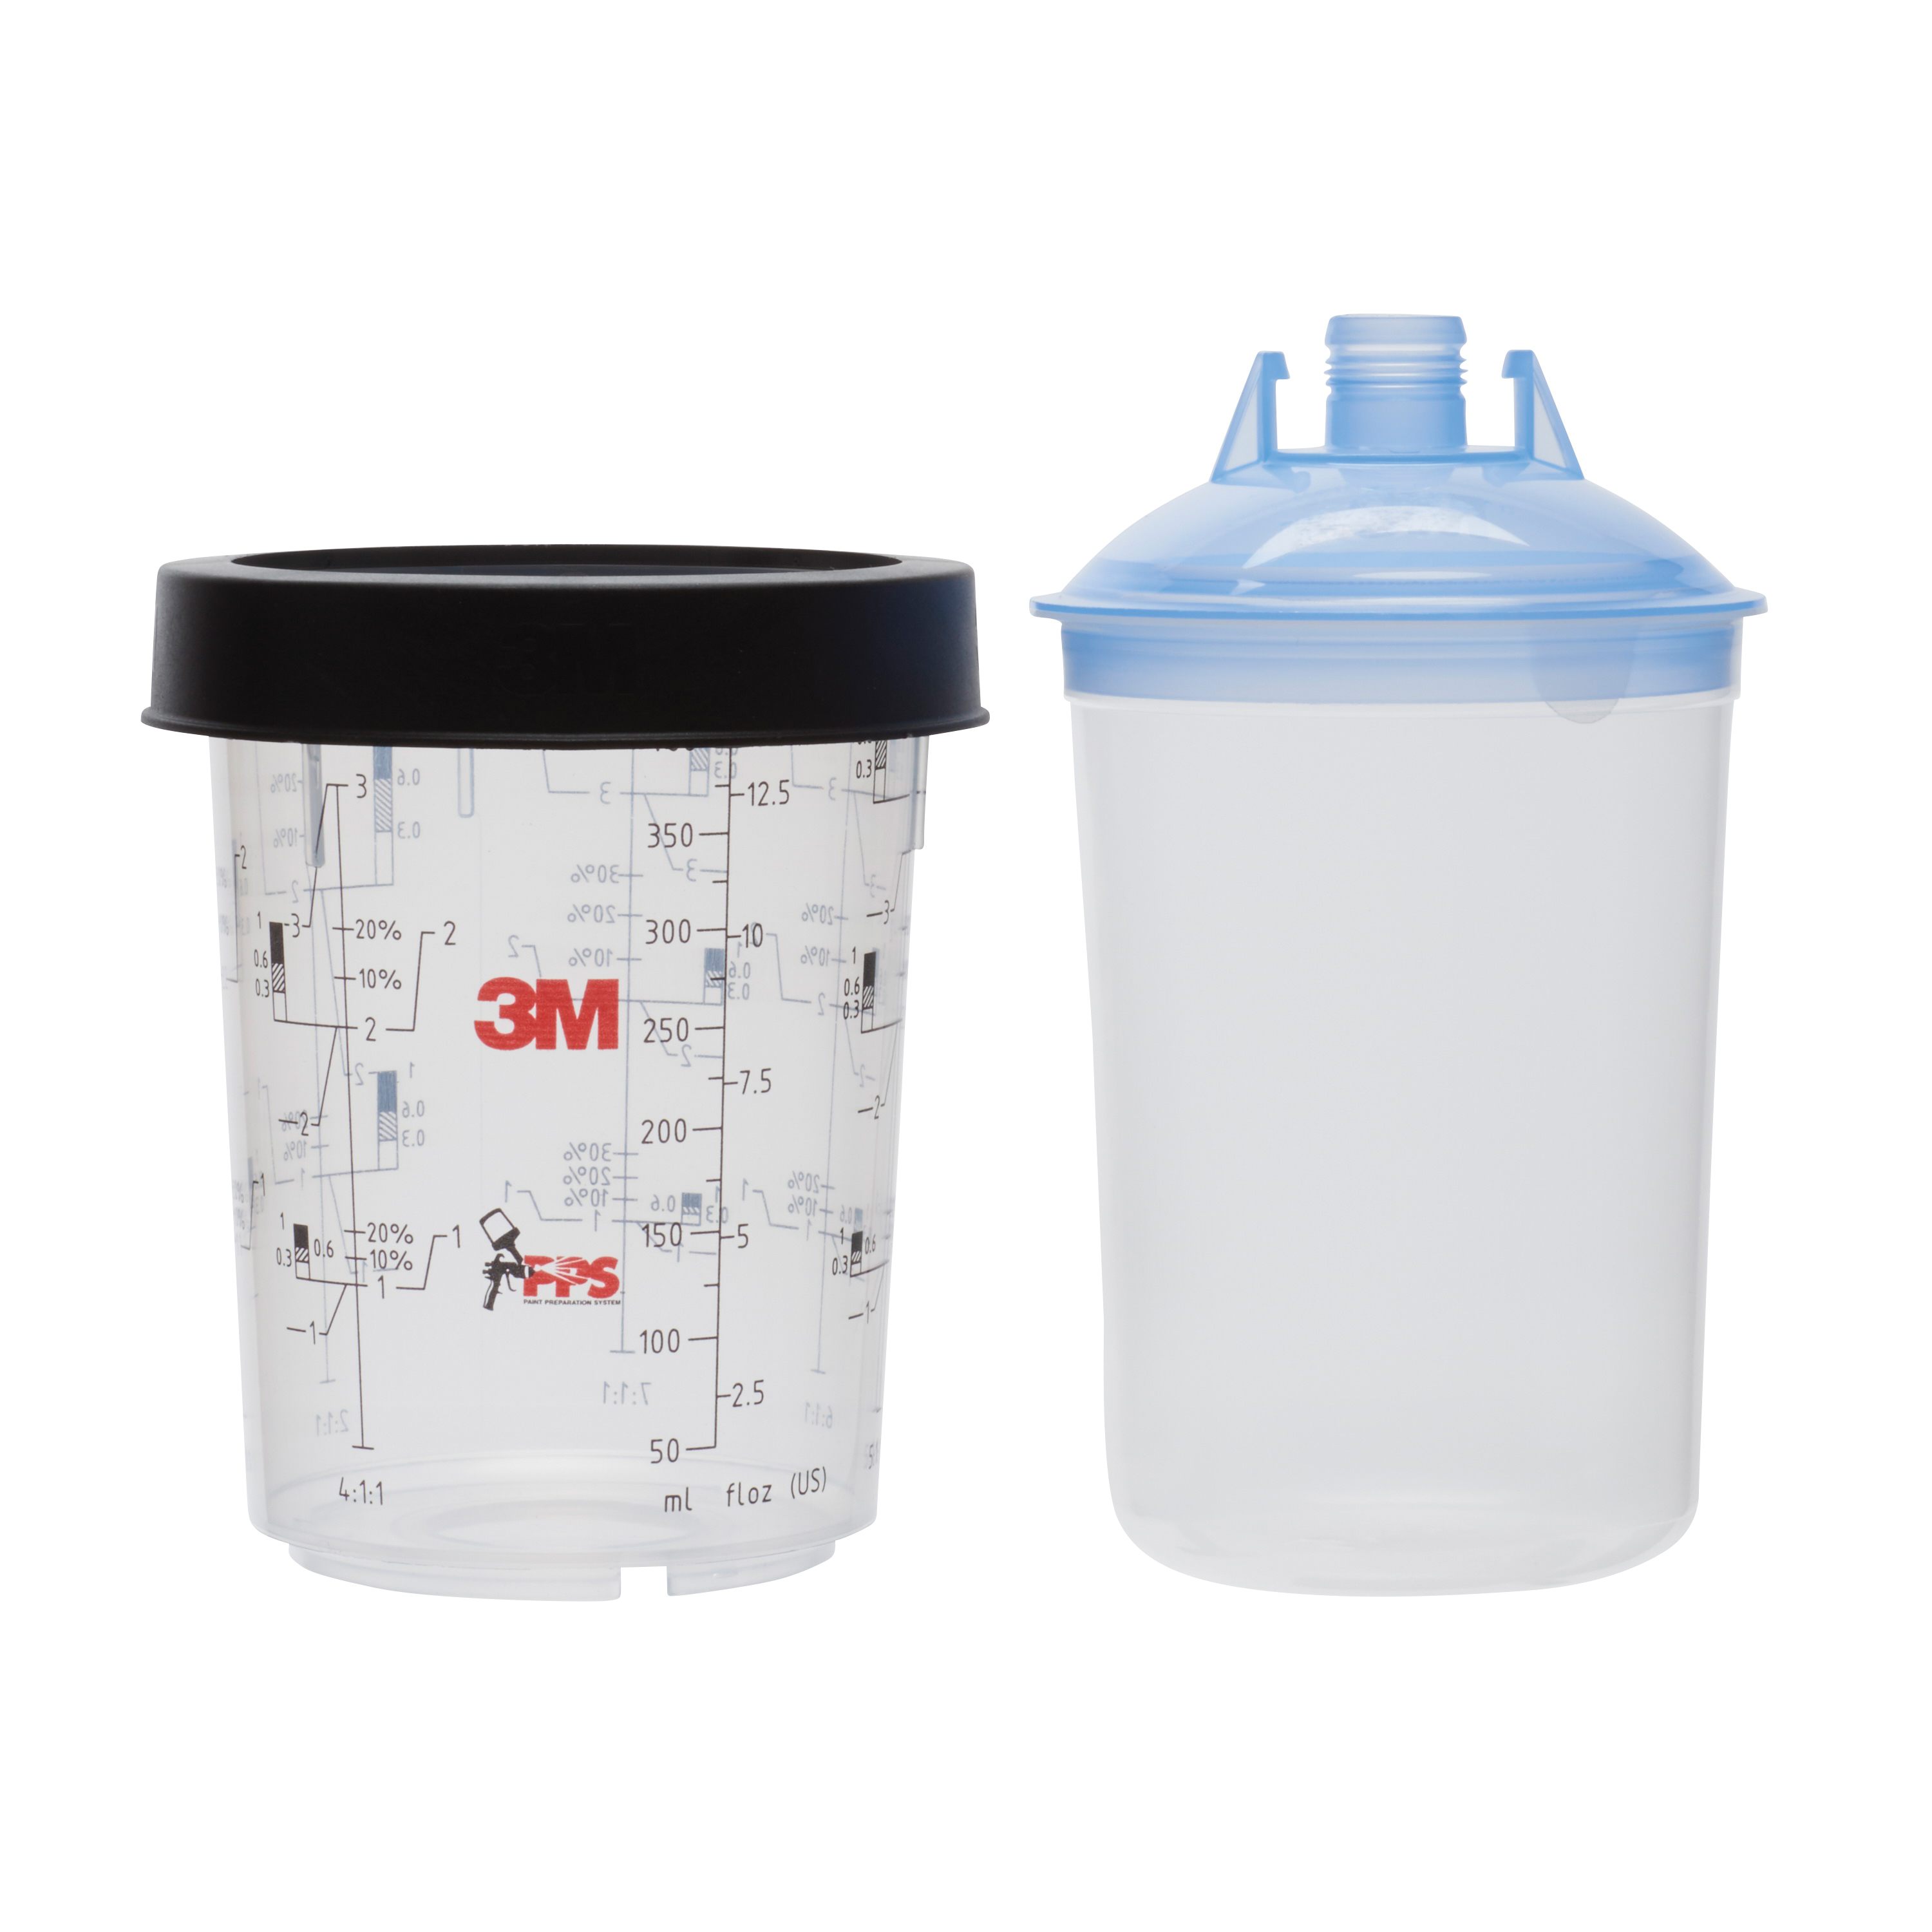 3M™ PPS™ 051131-16024 Large Paint Preparation System Kit, For Use With 3M™ Paint Preparation System, 200 micron Filter